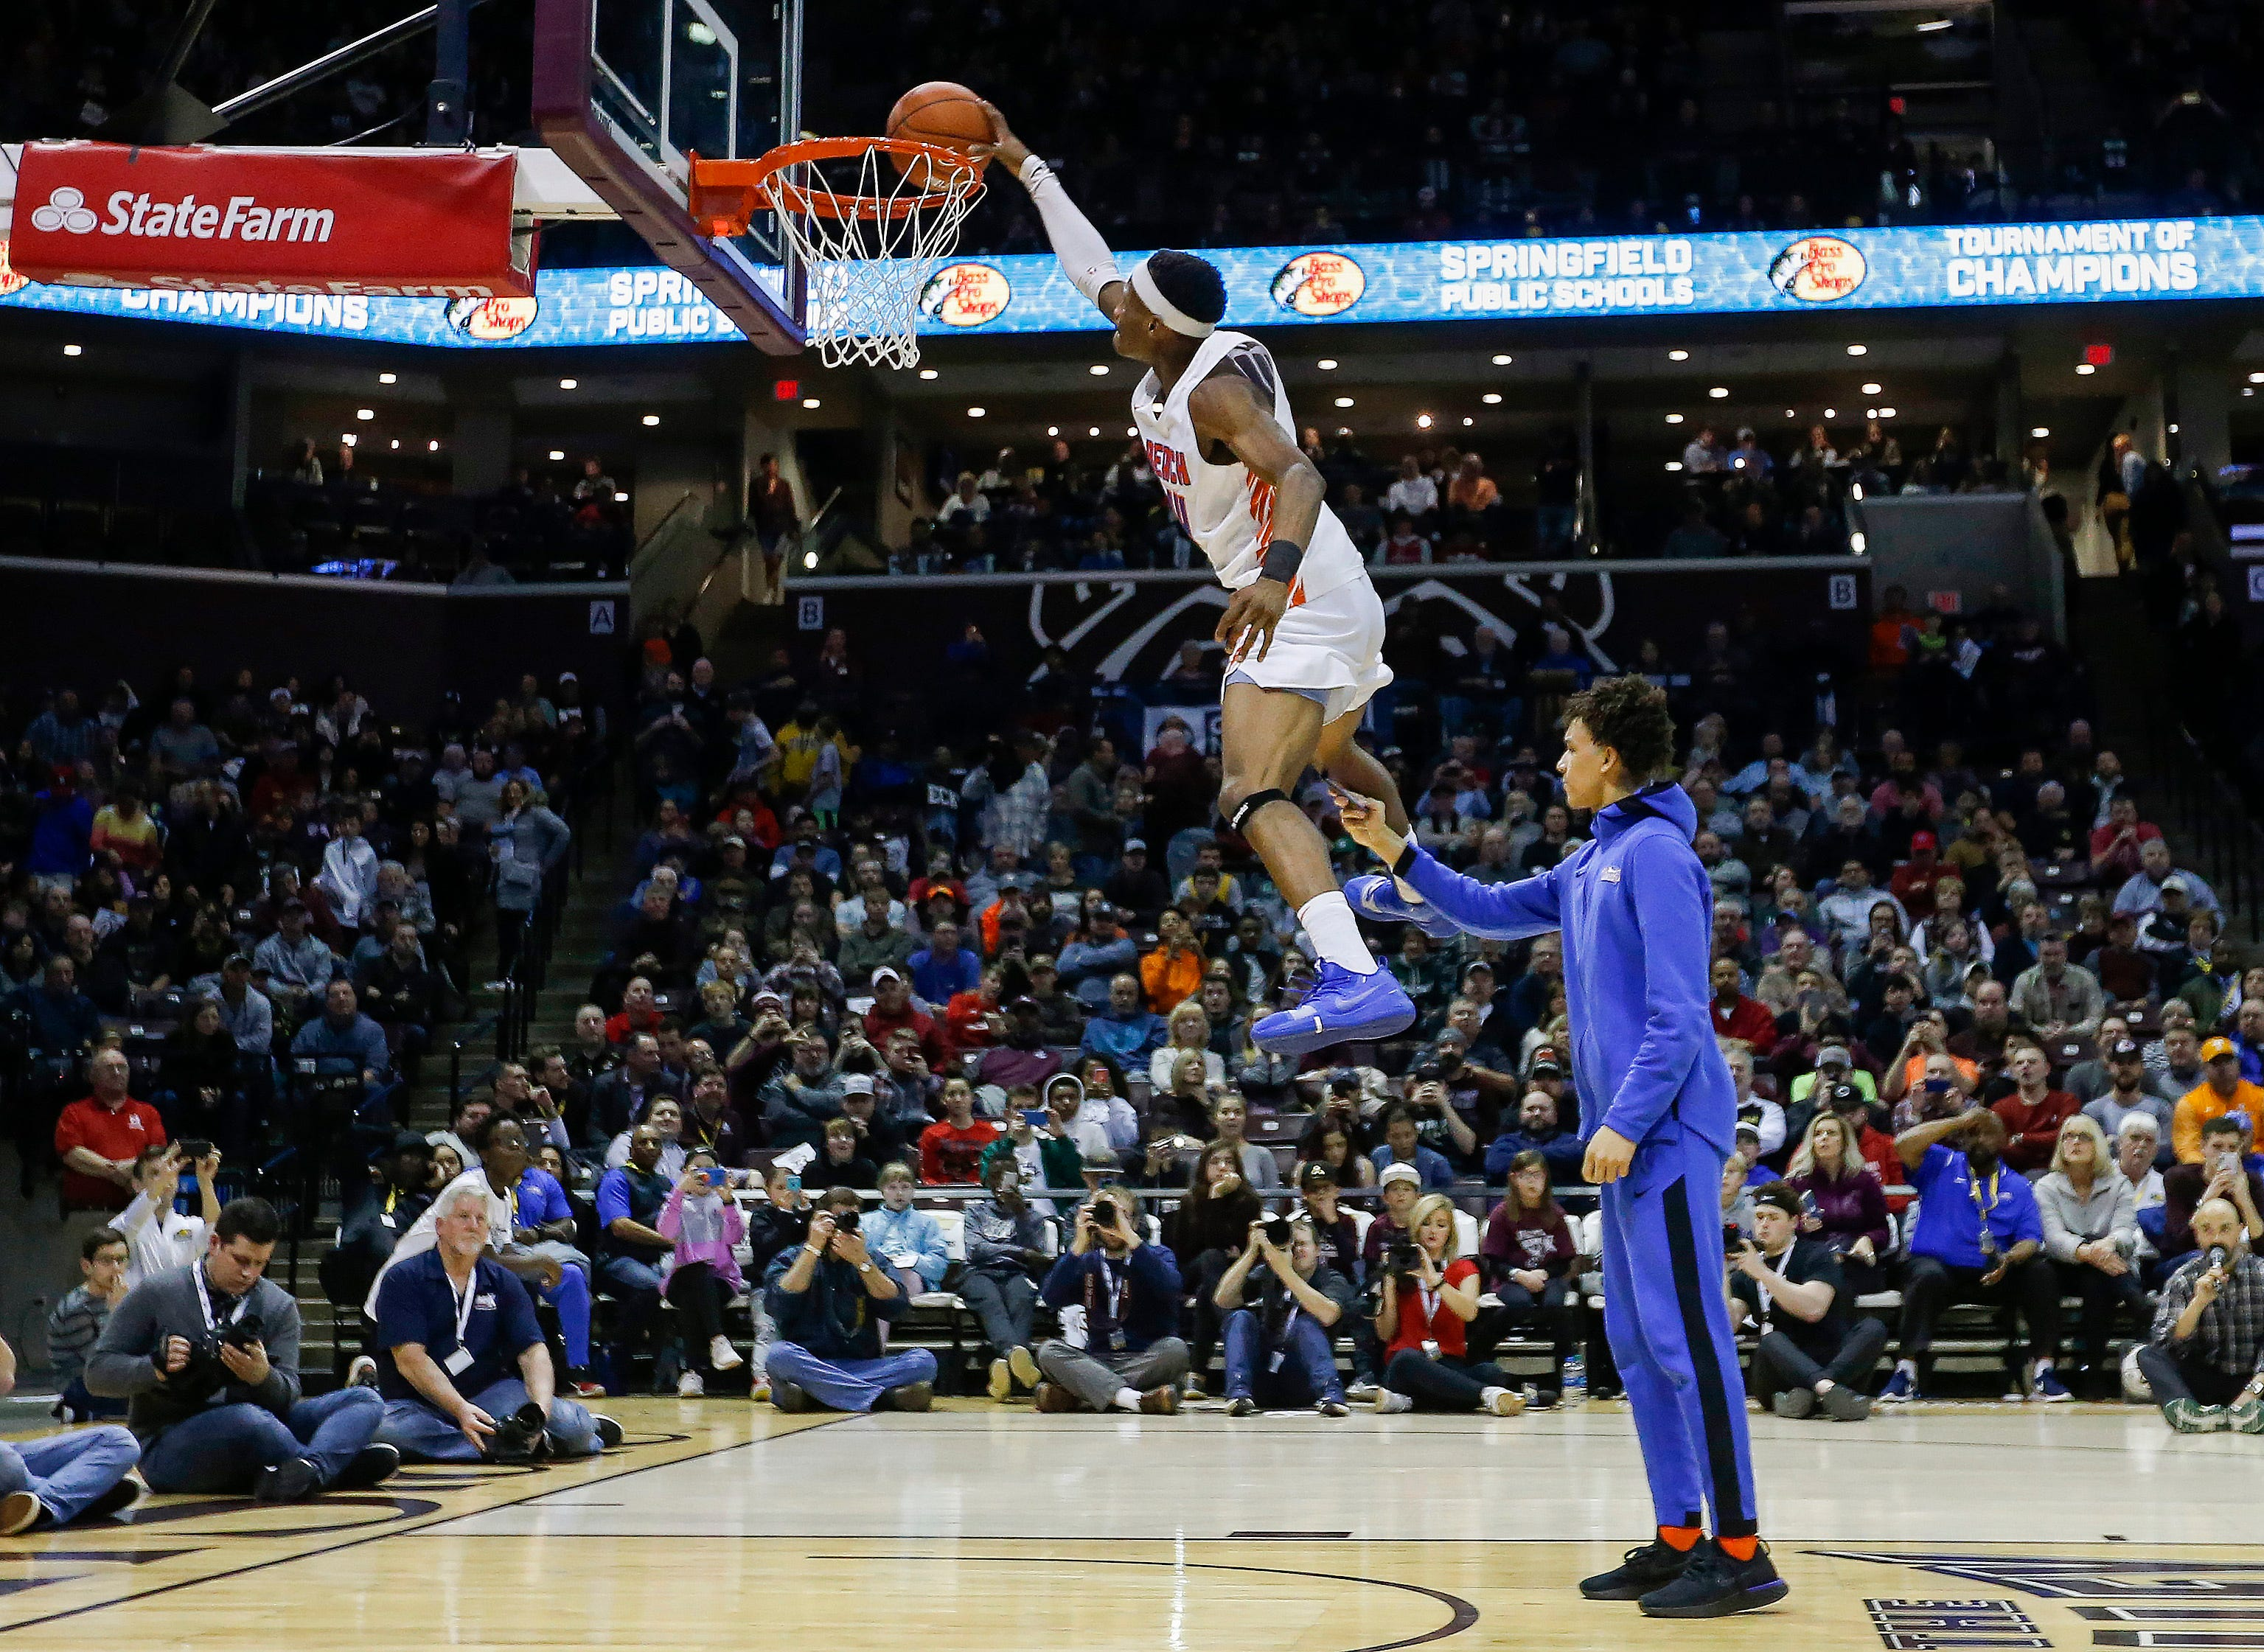 Micah Monroe, of Rainier Beach, leaps over his teammate in the slam dunk contest at the Bass Pro Shops Tournament of Champions at JQH Arena on Saturday, Jan. 19, 2019. Monroe won the contest on this dunk.